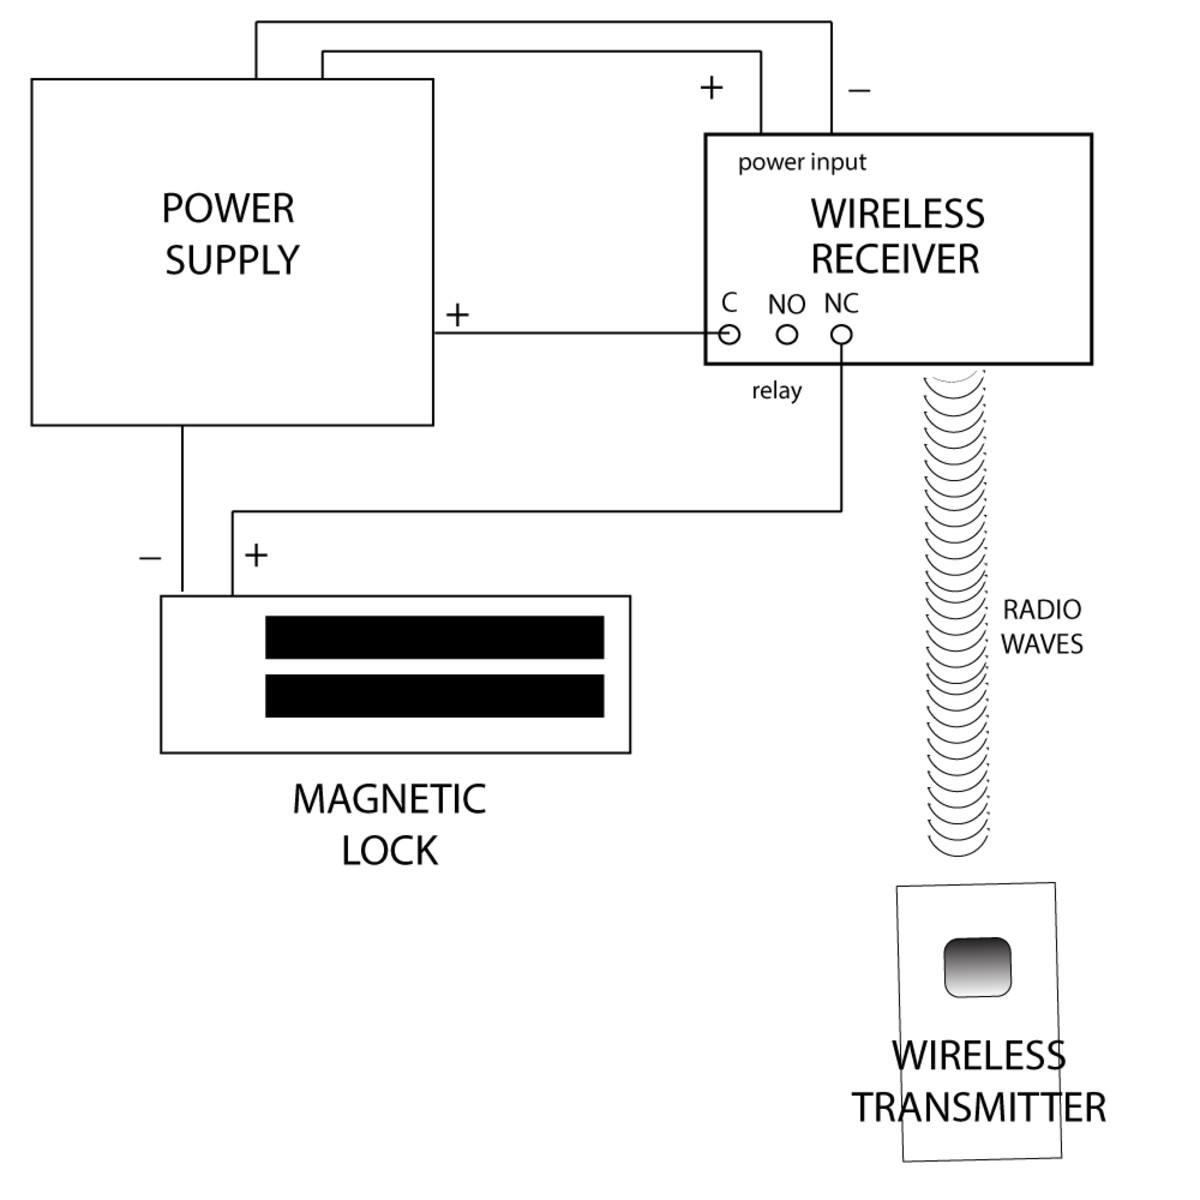 Using a wireless transmitter and receiver to release an electromagnetic lock.